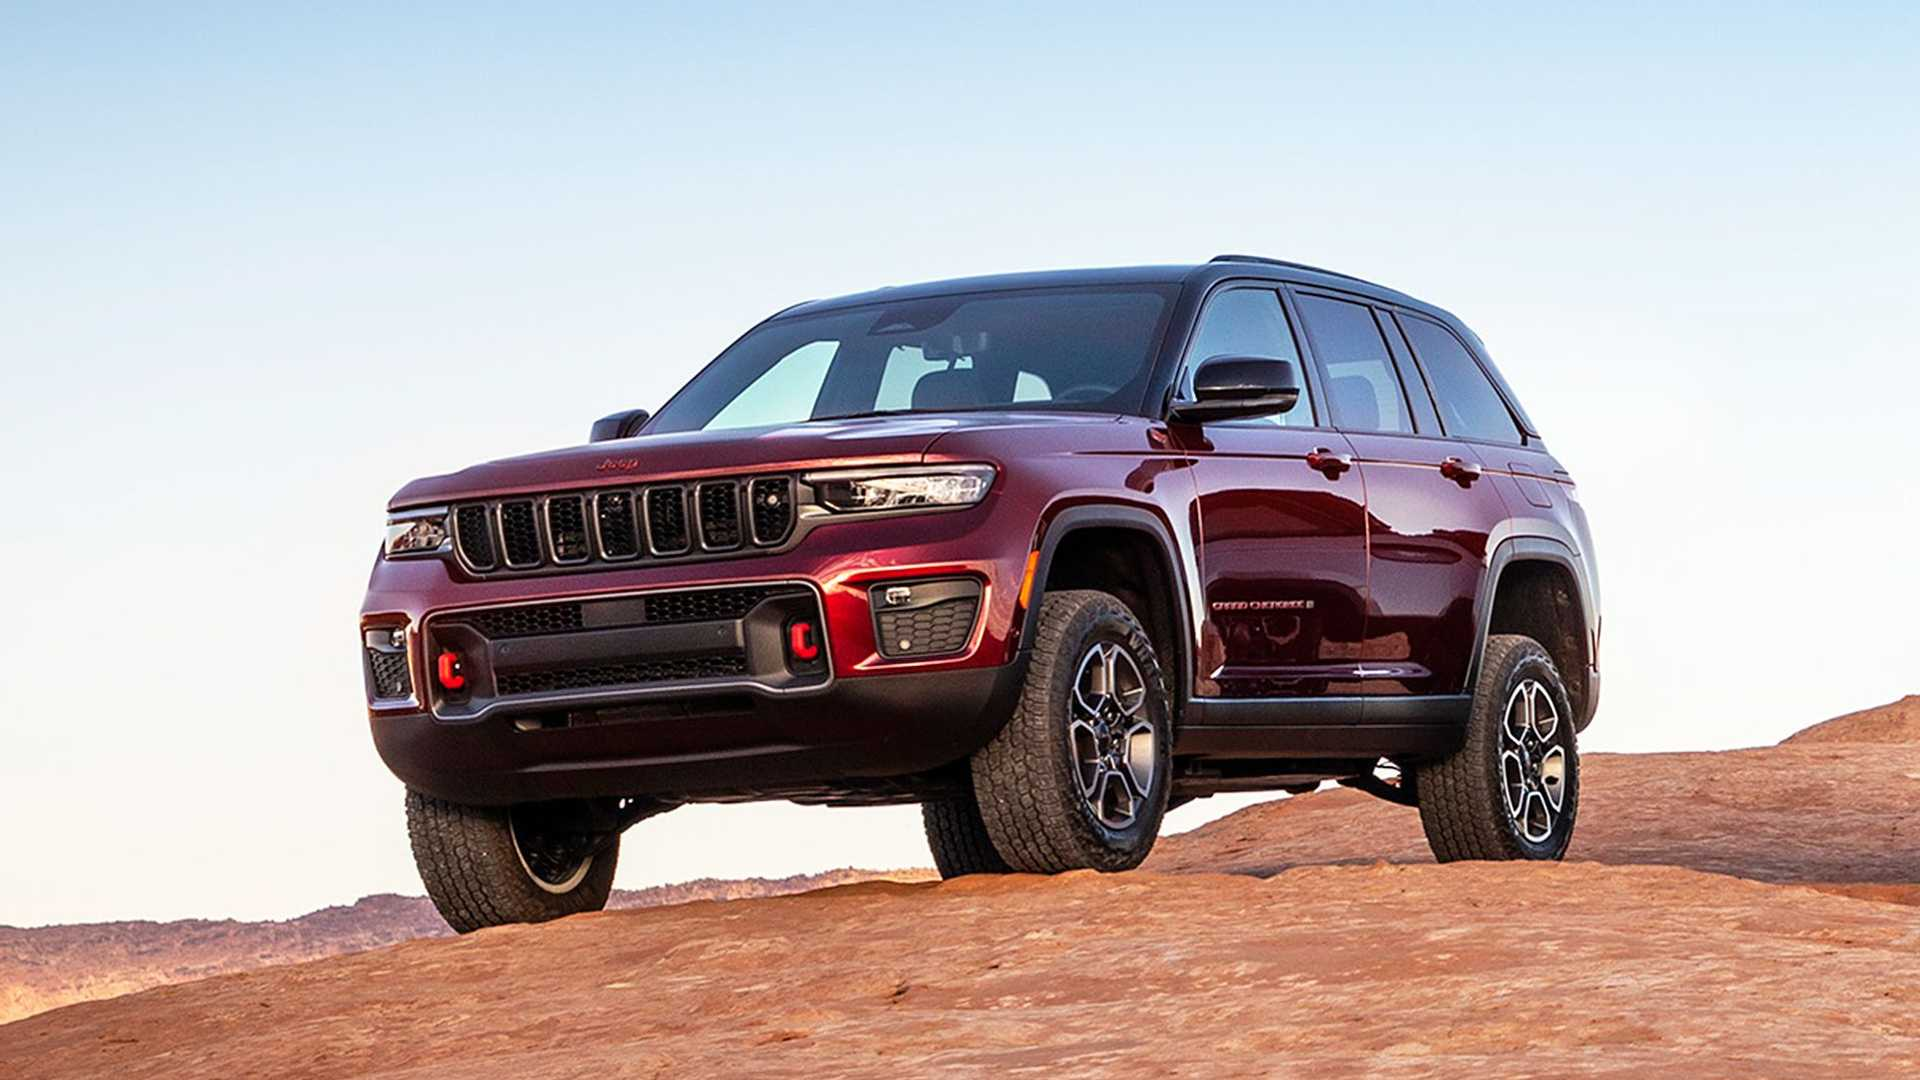 The seven-seat variant of the Jeep Grand Cherokee went into next generation at the beginning of 2021, and the two-row version has only followed it now.